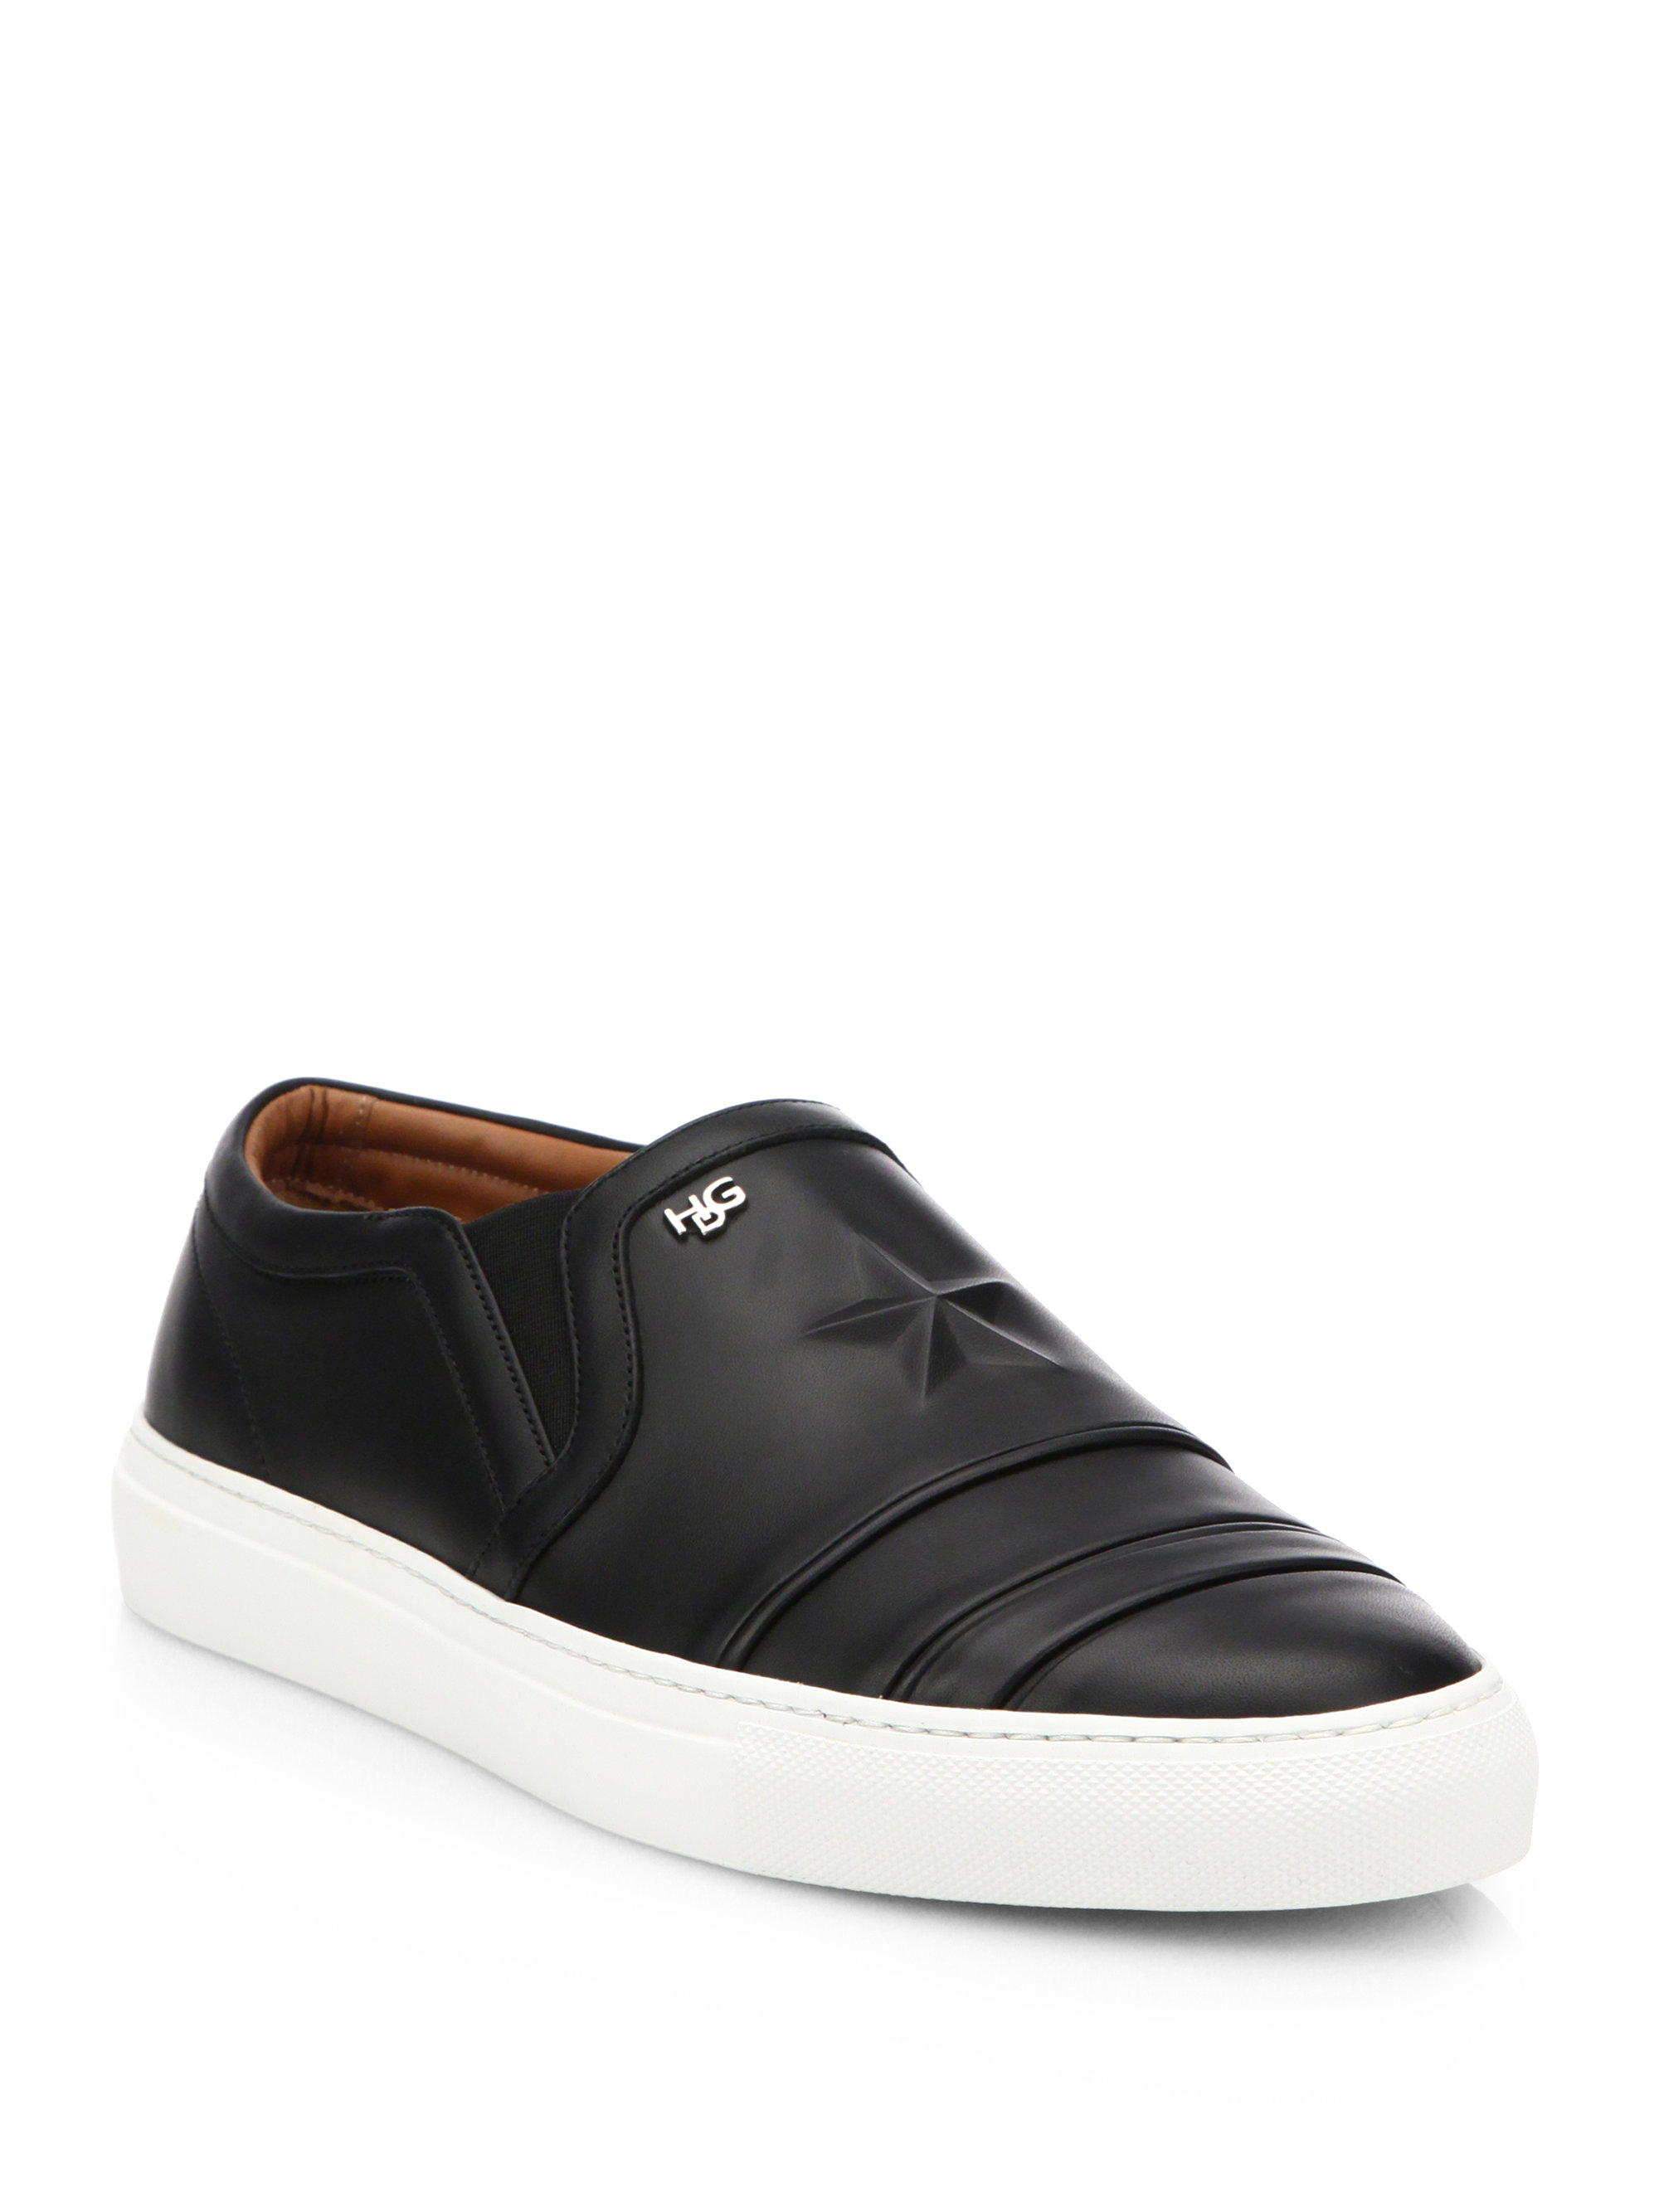 deals cheap online Givenchy embossed slip-on senakers outlet 100% guaranteed pre order cheap online cheap visit 4UhrhAyZQO